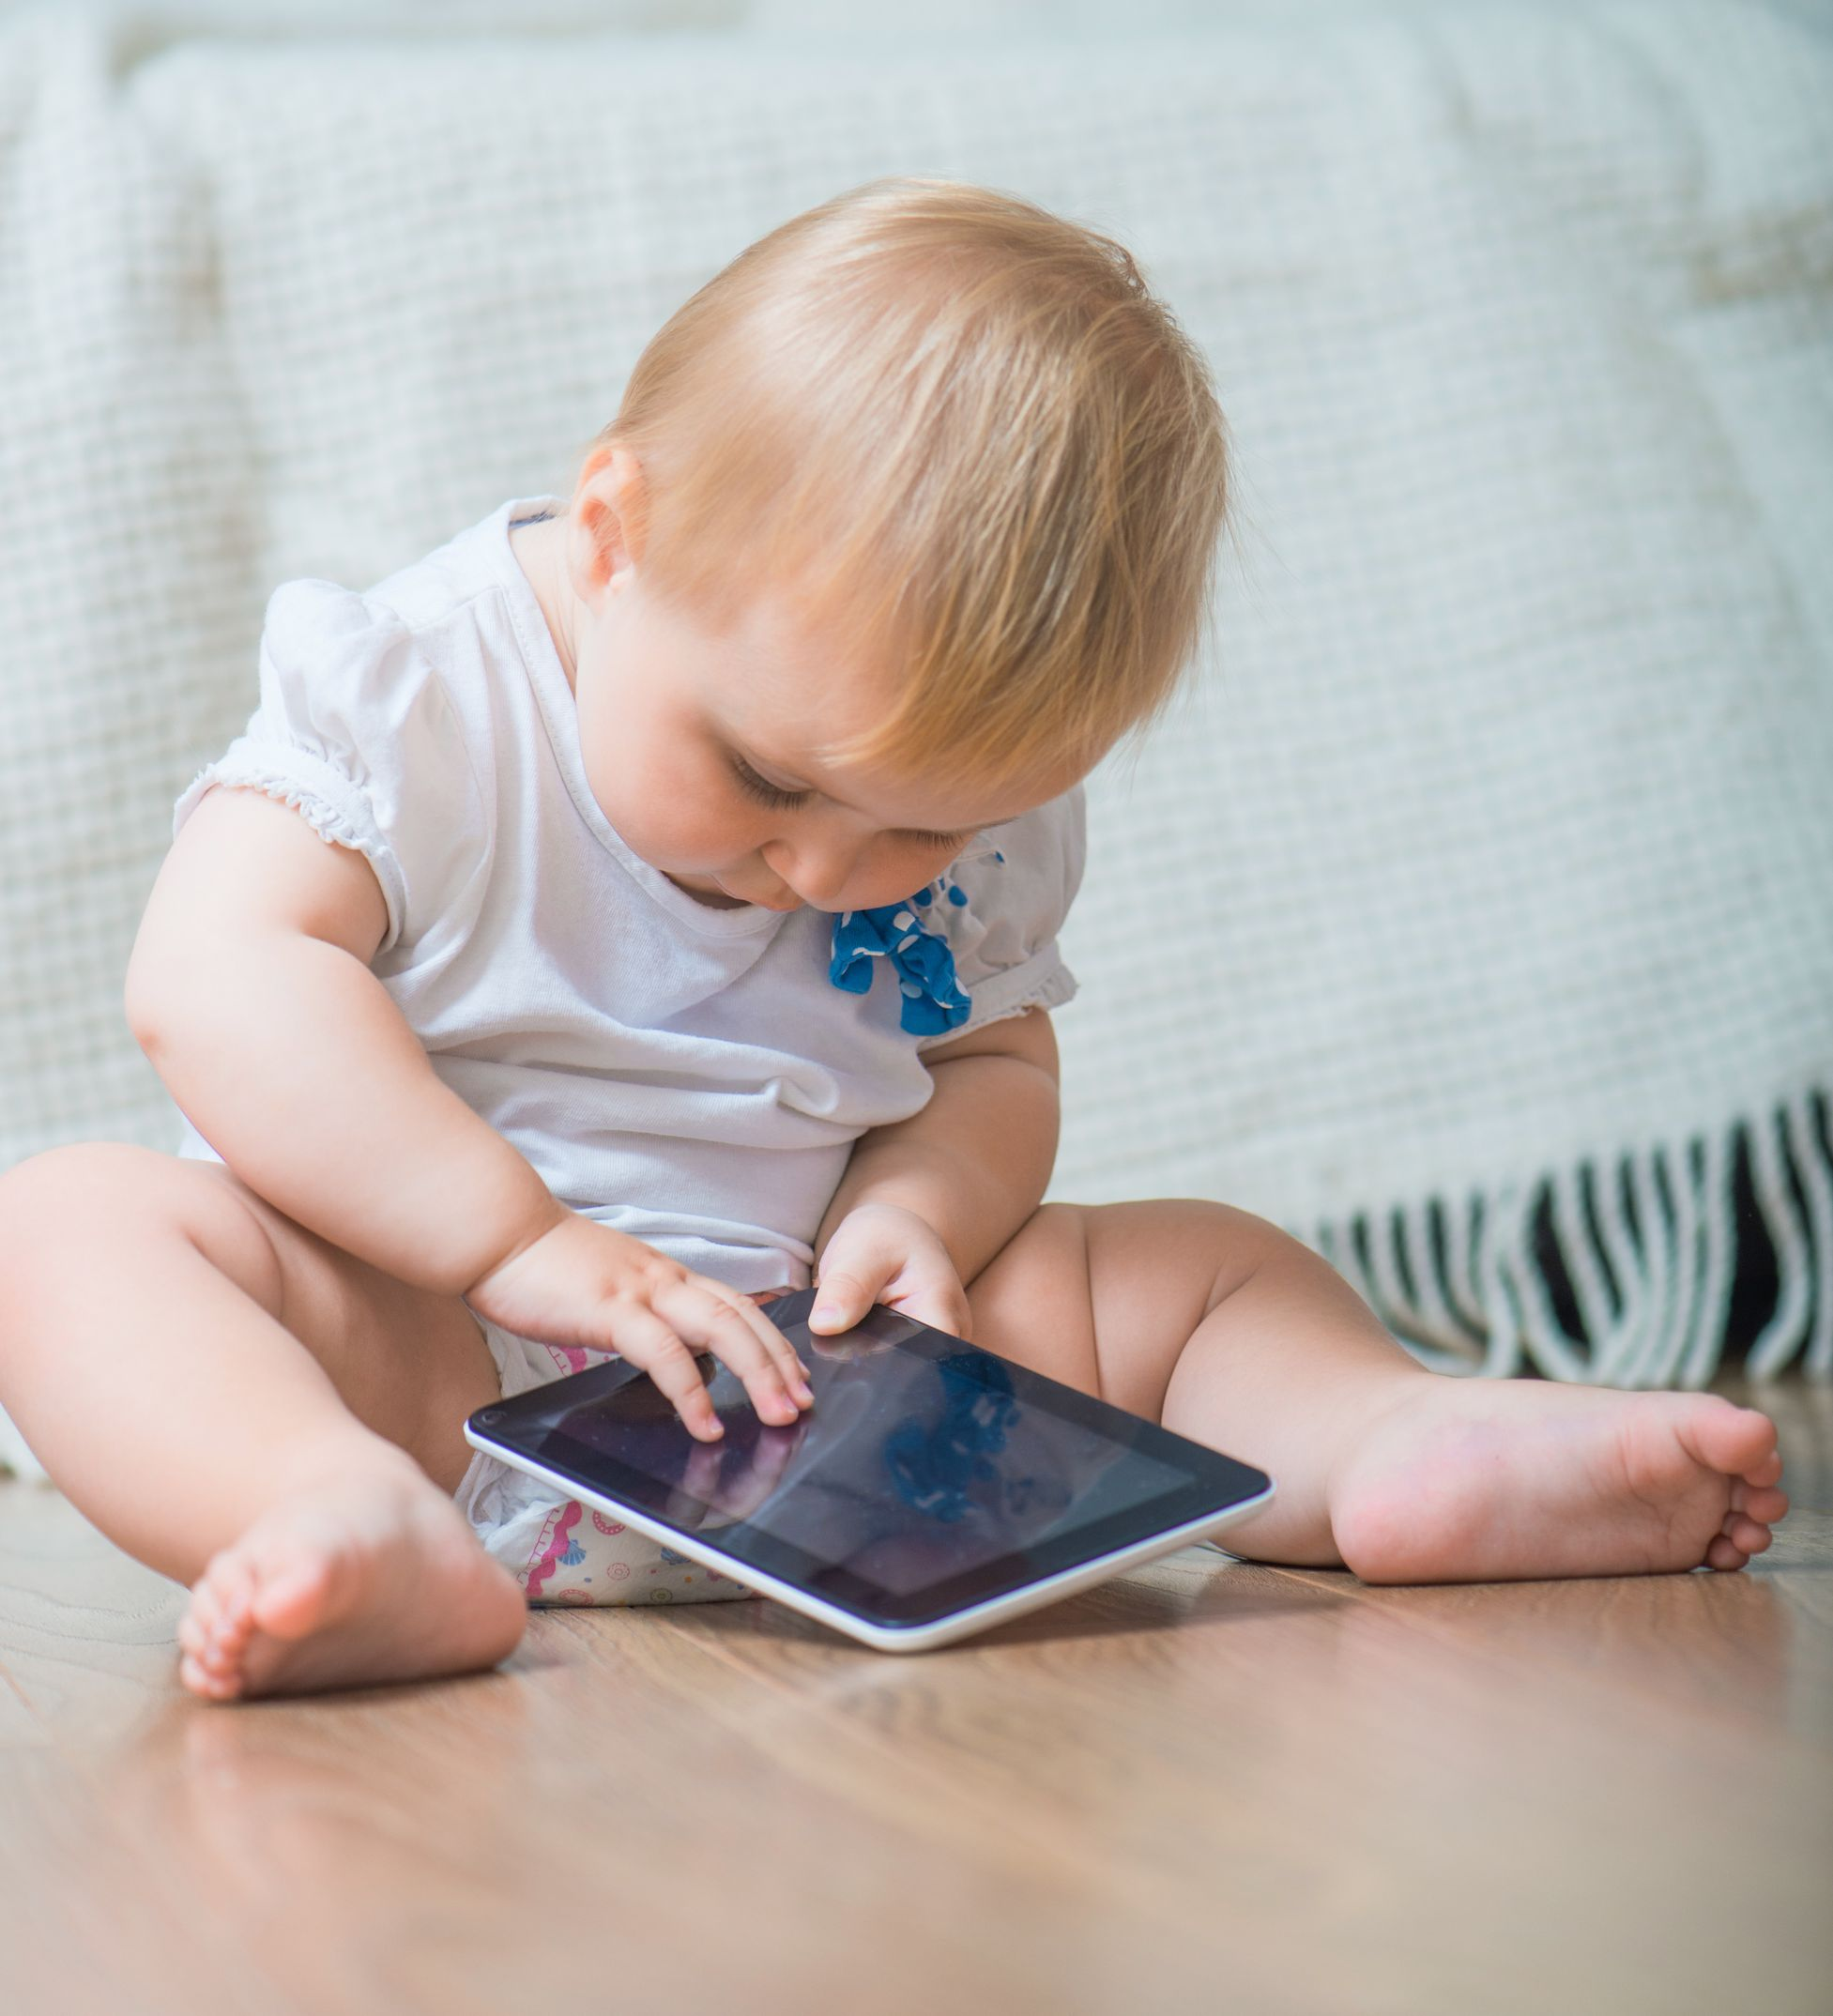 Health Effects Of Excessive Screen Time And How To Battle Them